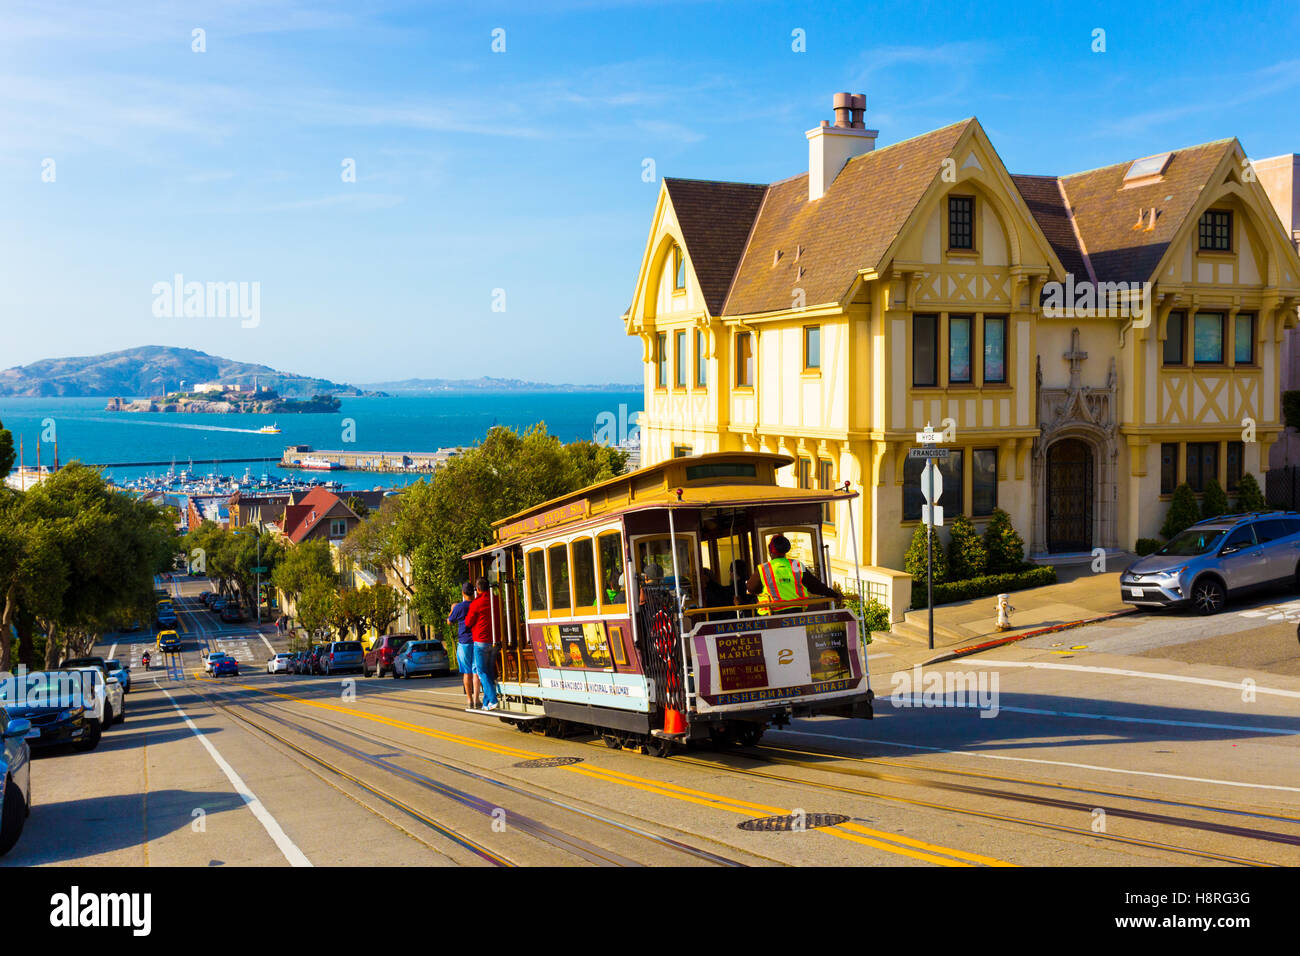 Combined scenic view of San Francisco Bay with Alcatraz, cable car, Victorian houses, typical iconic siteseeing - Stock Image